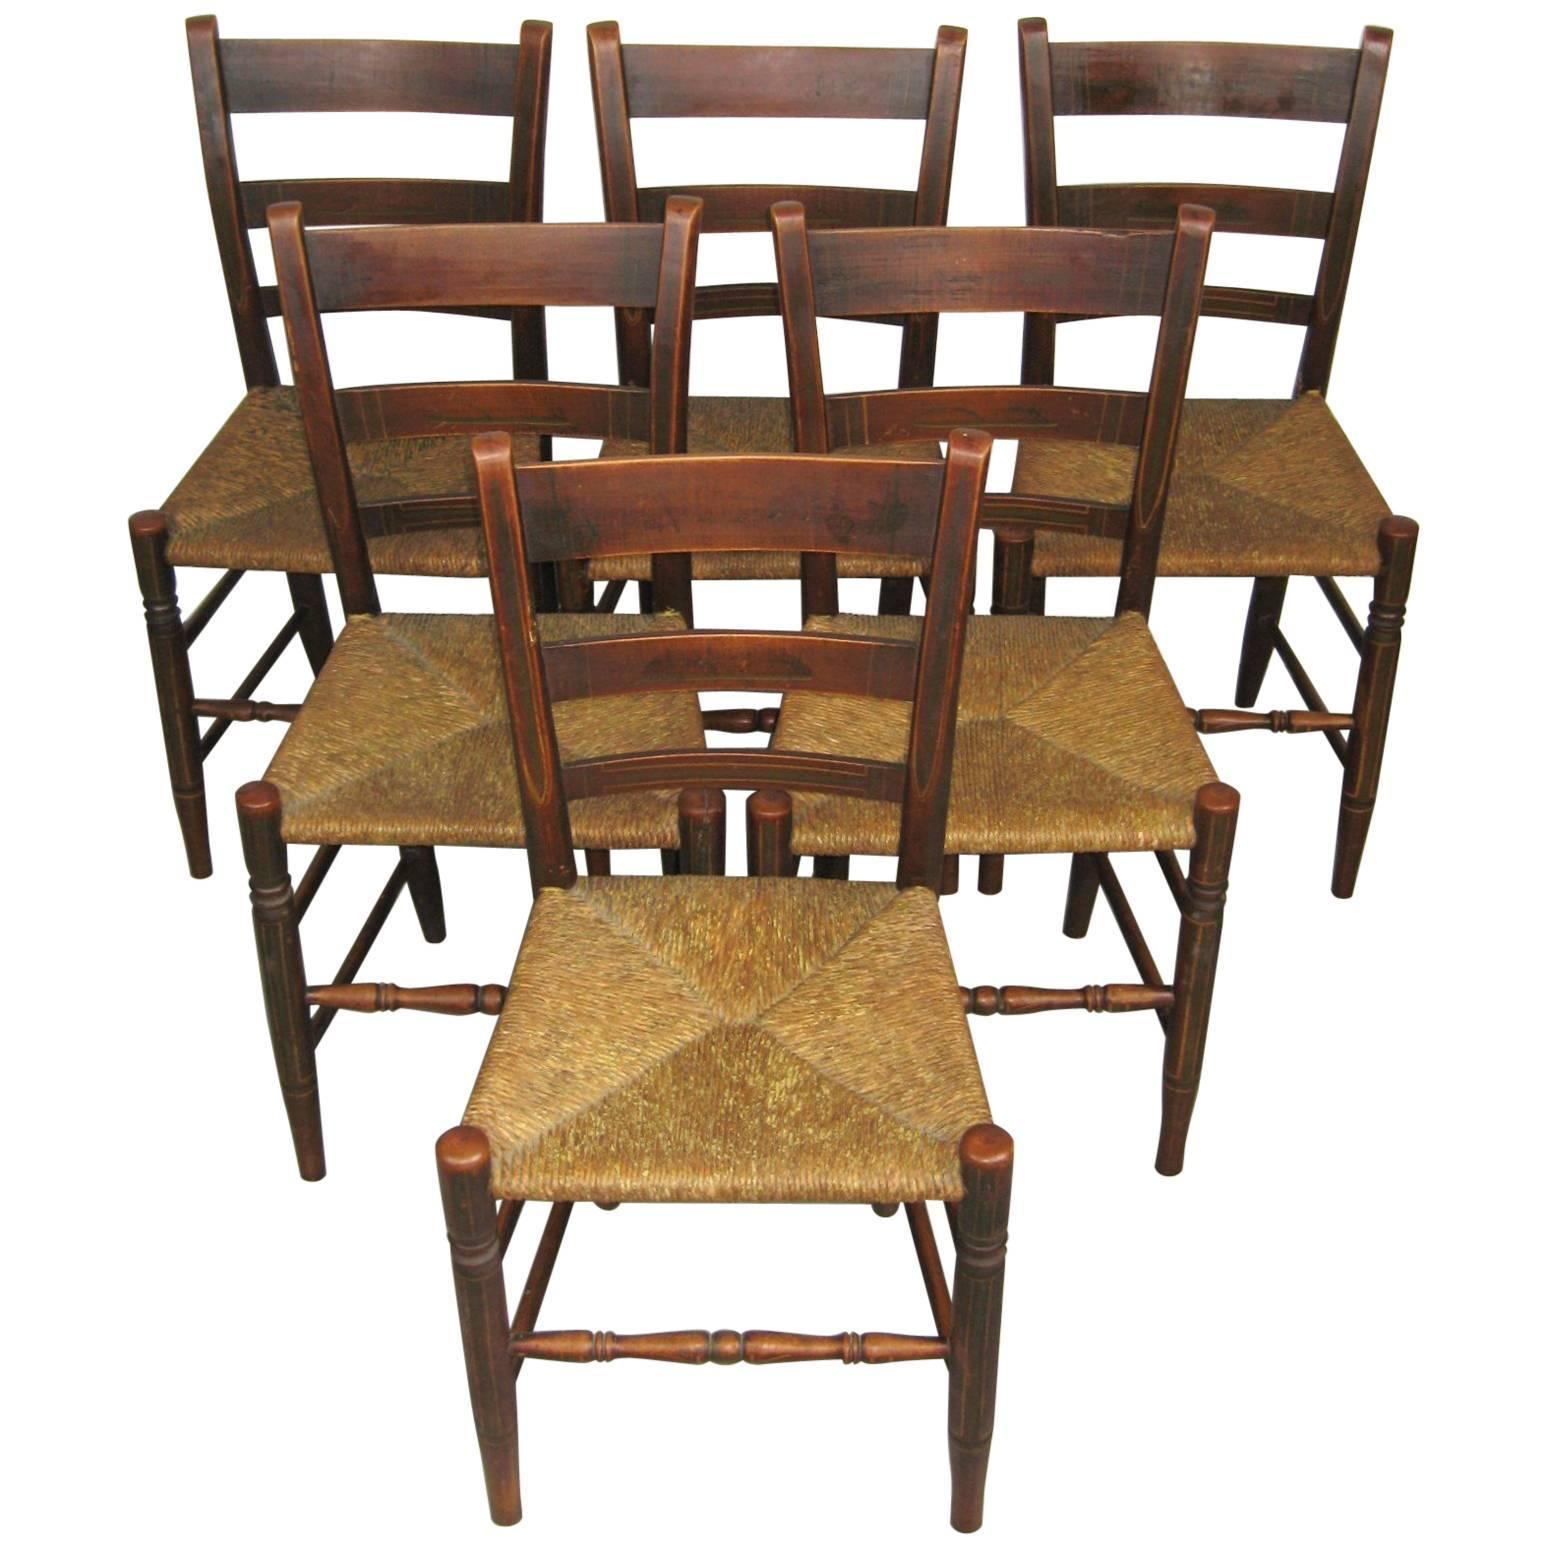 rush seat chairs chair cover rentals fresno ca antique 1820s set of six ladder back paint decorated for sale